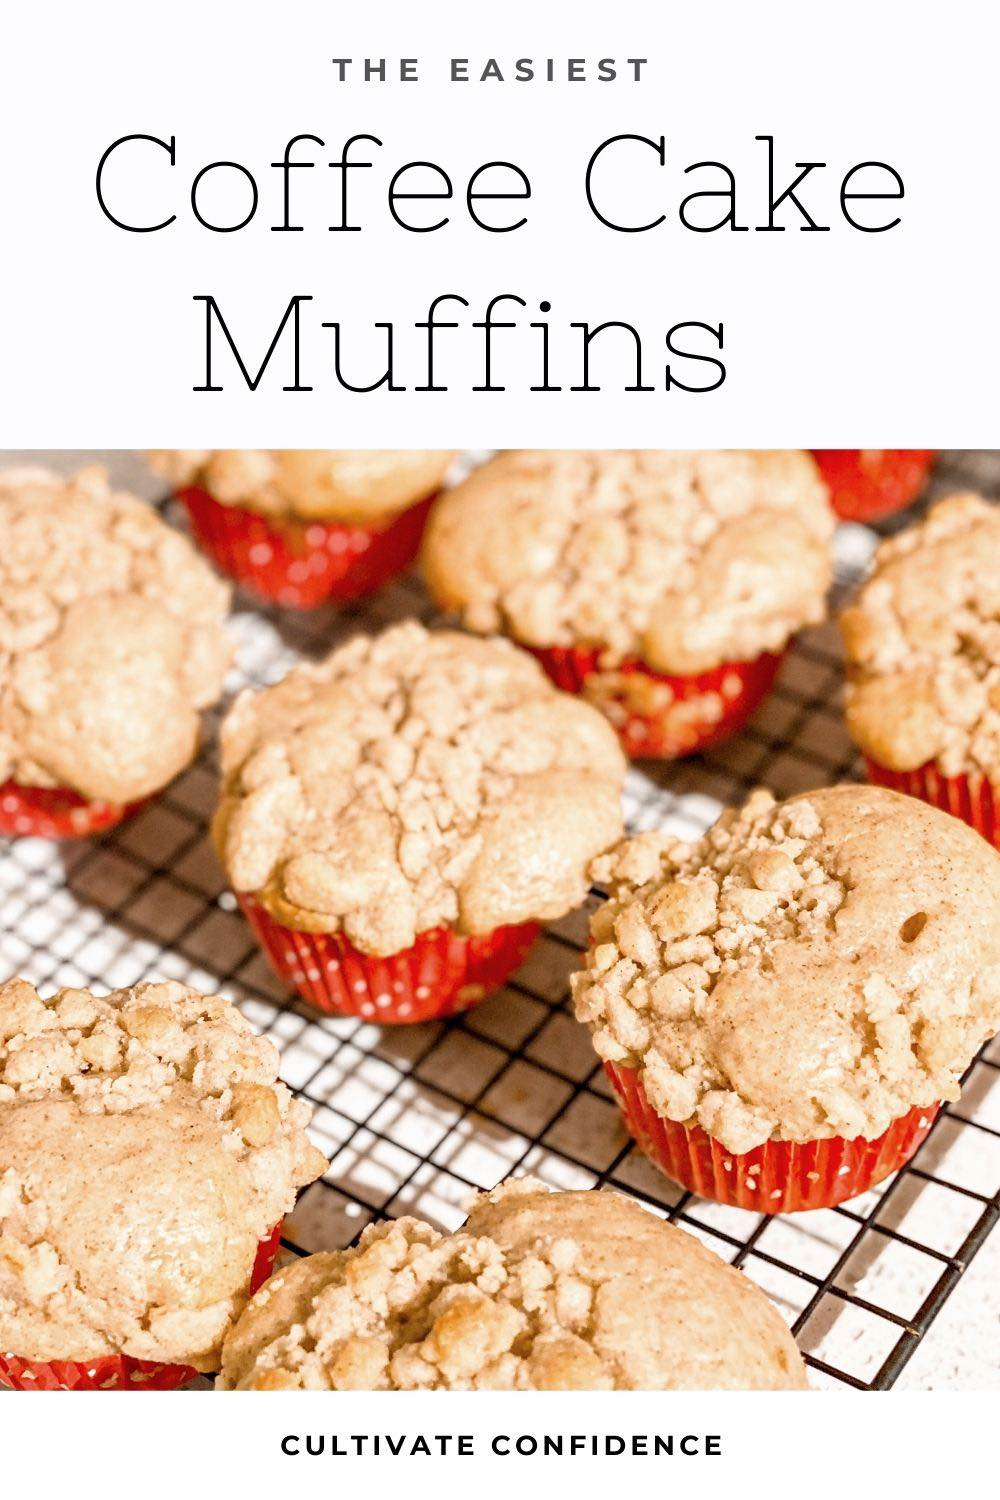 How to Make the Easiest Coffee Cake Muffins